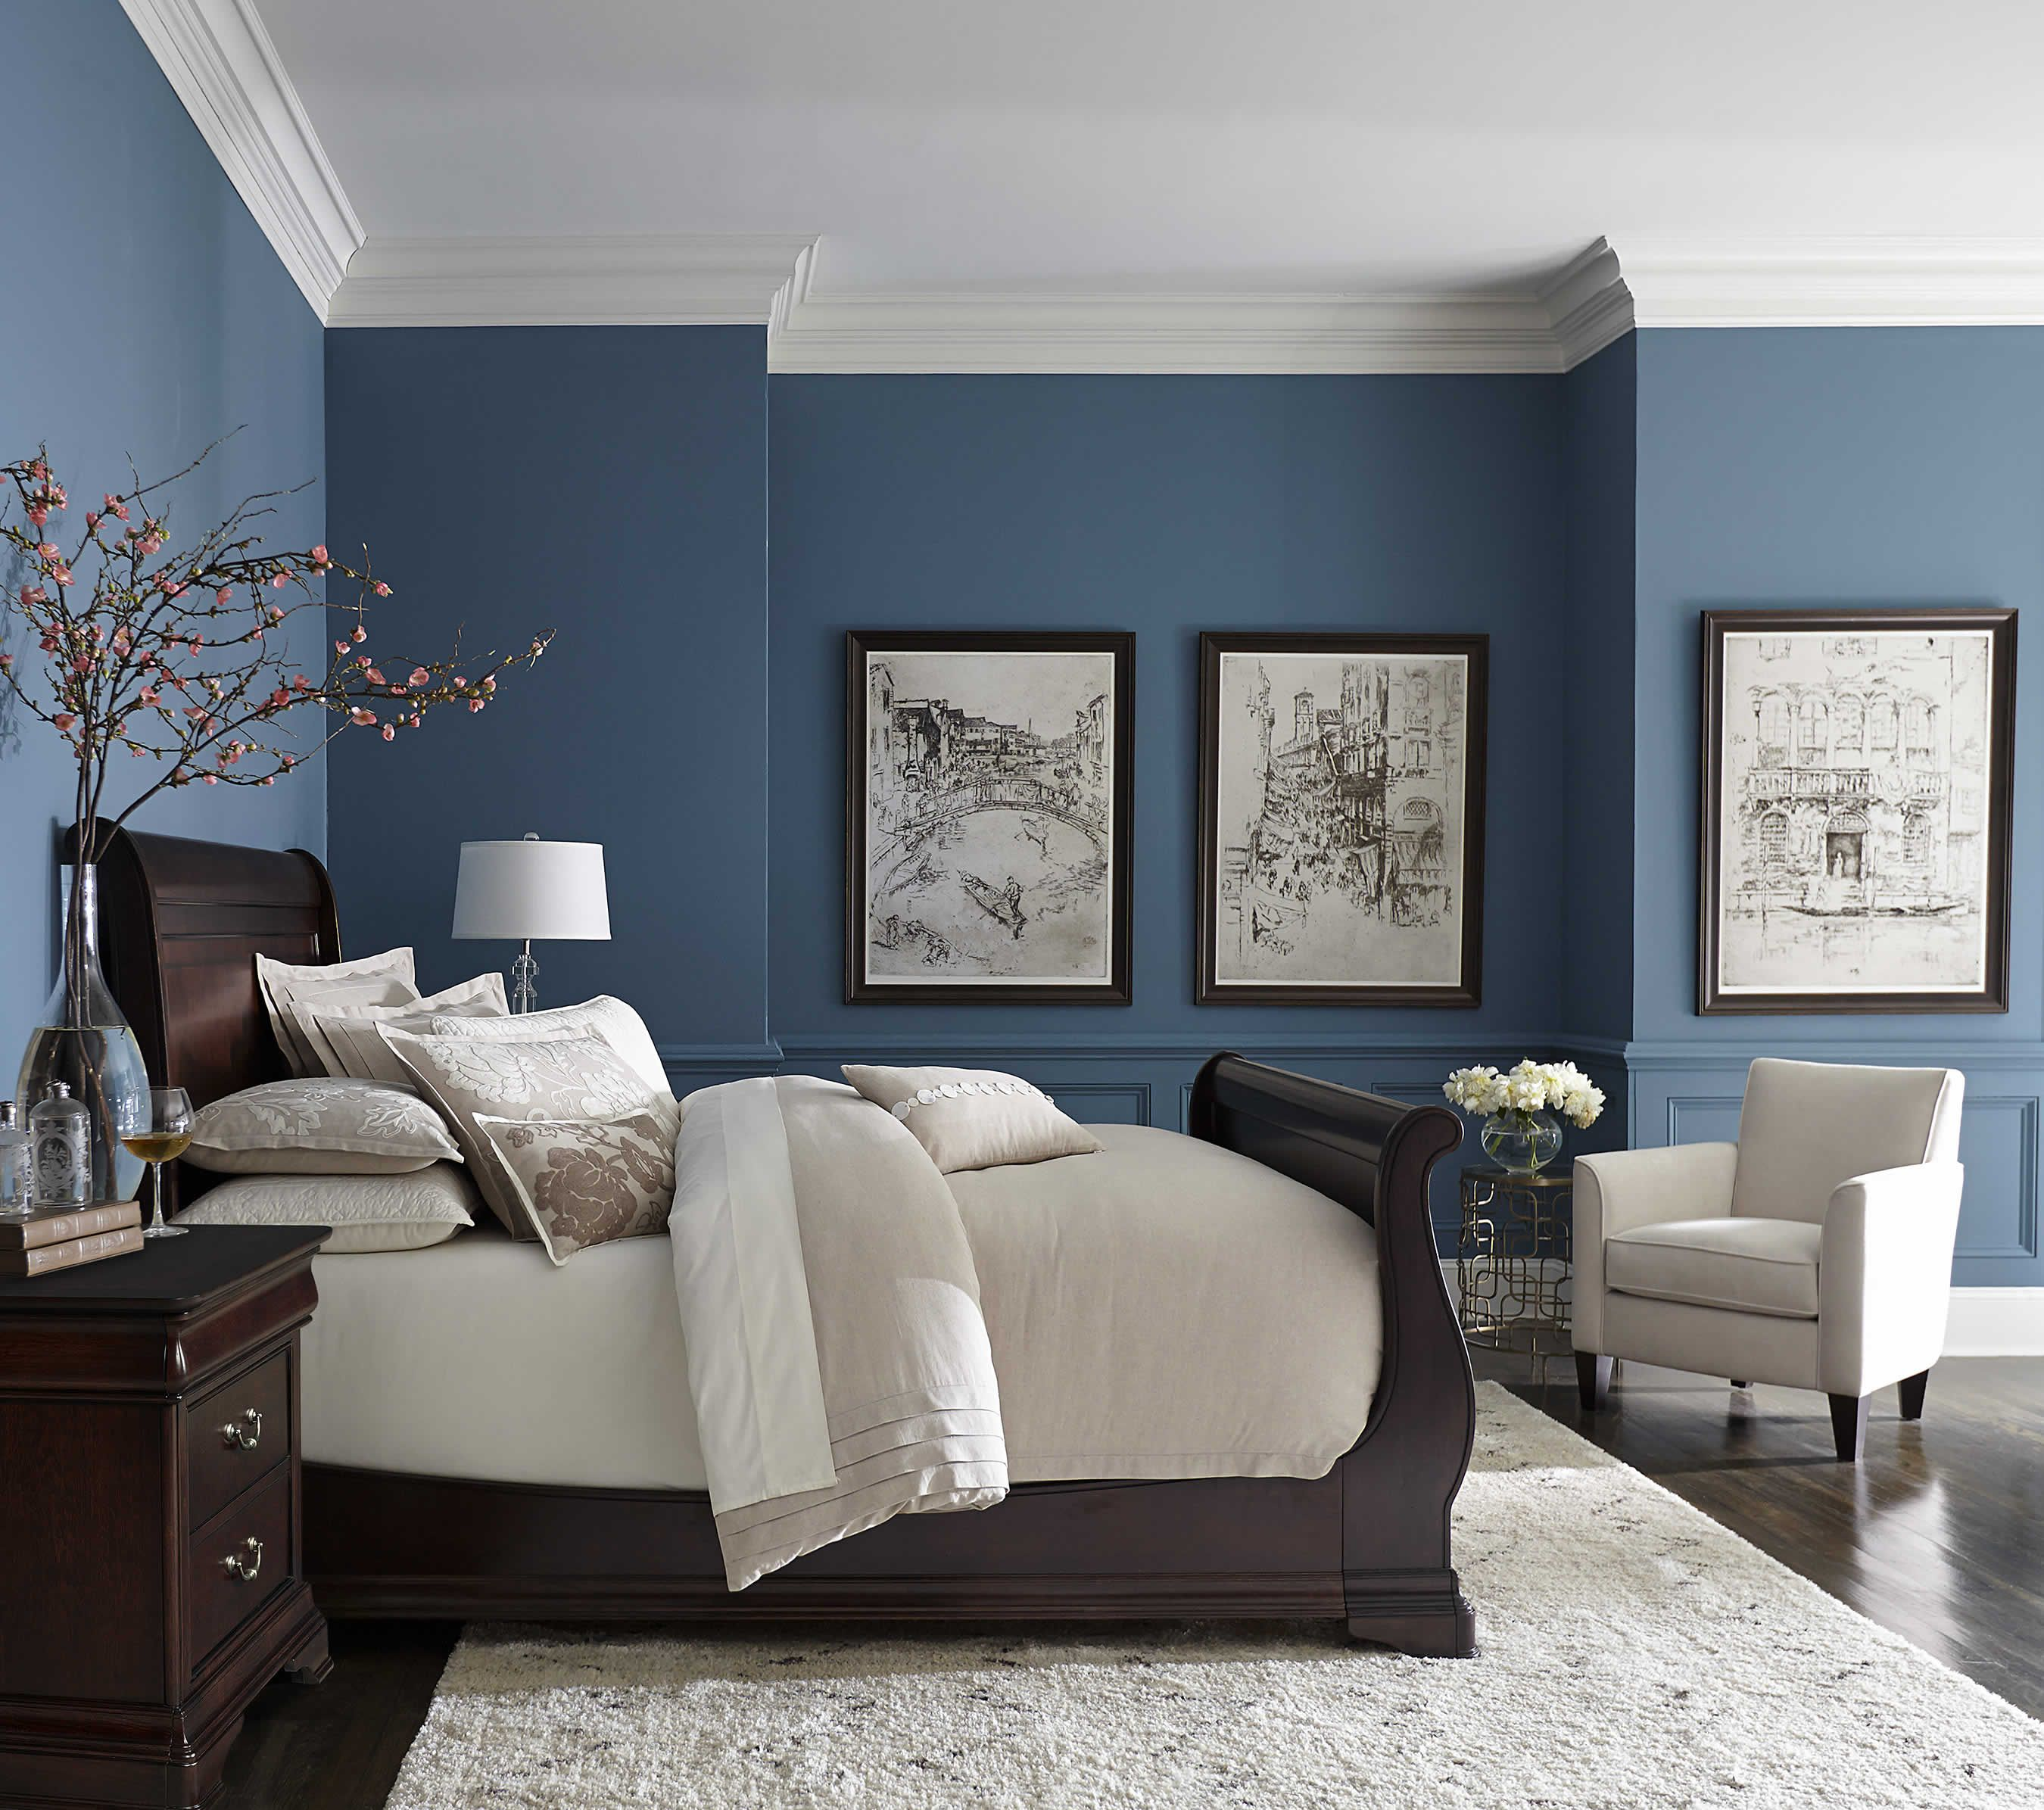 Pretty blue color with white crown molding home pinterest blue colors crown and bedrooms Master bedroom light blue walls